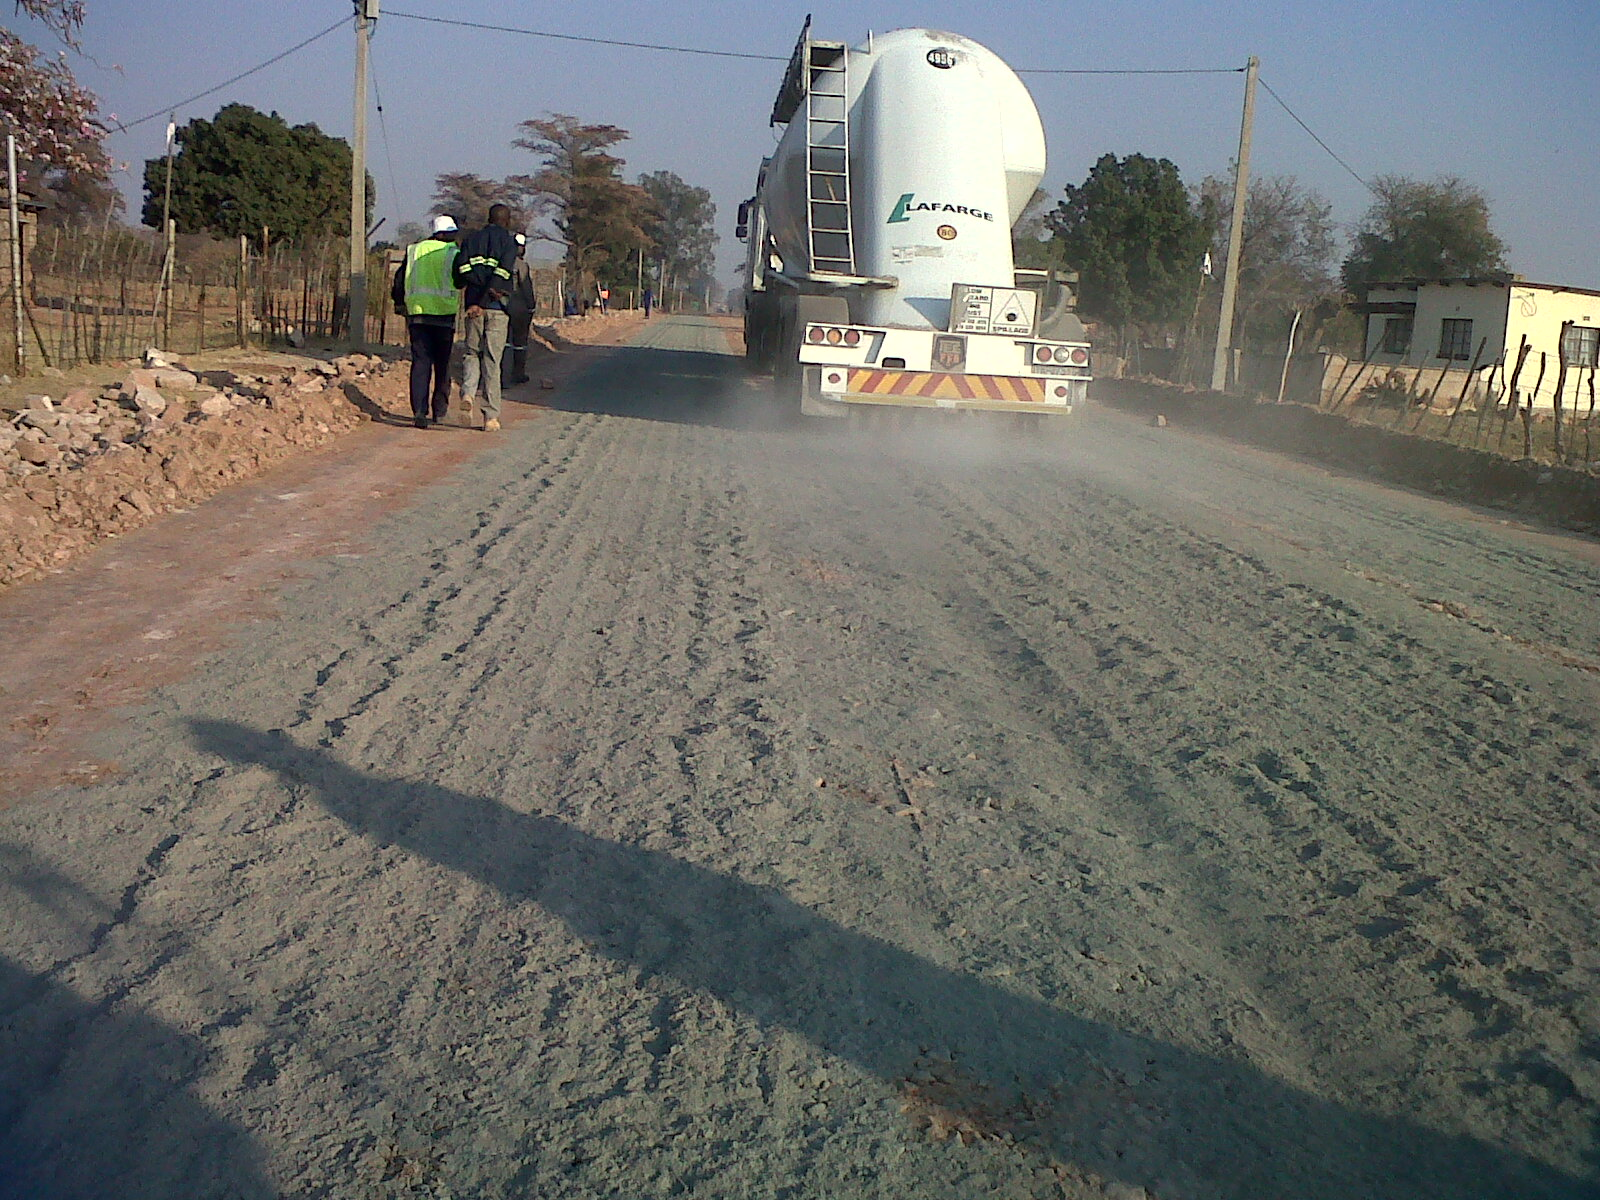 Road layer stabilisation